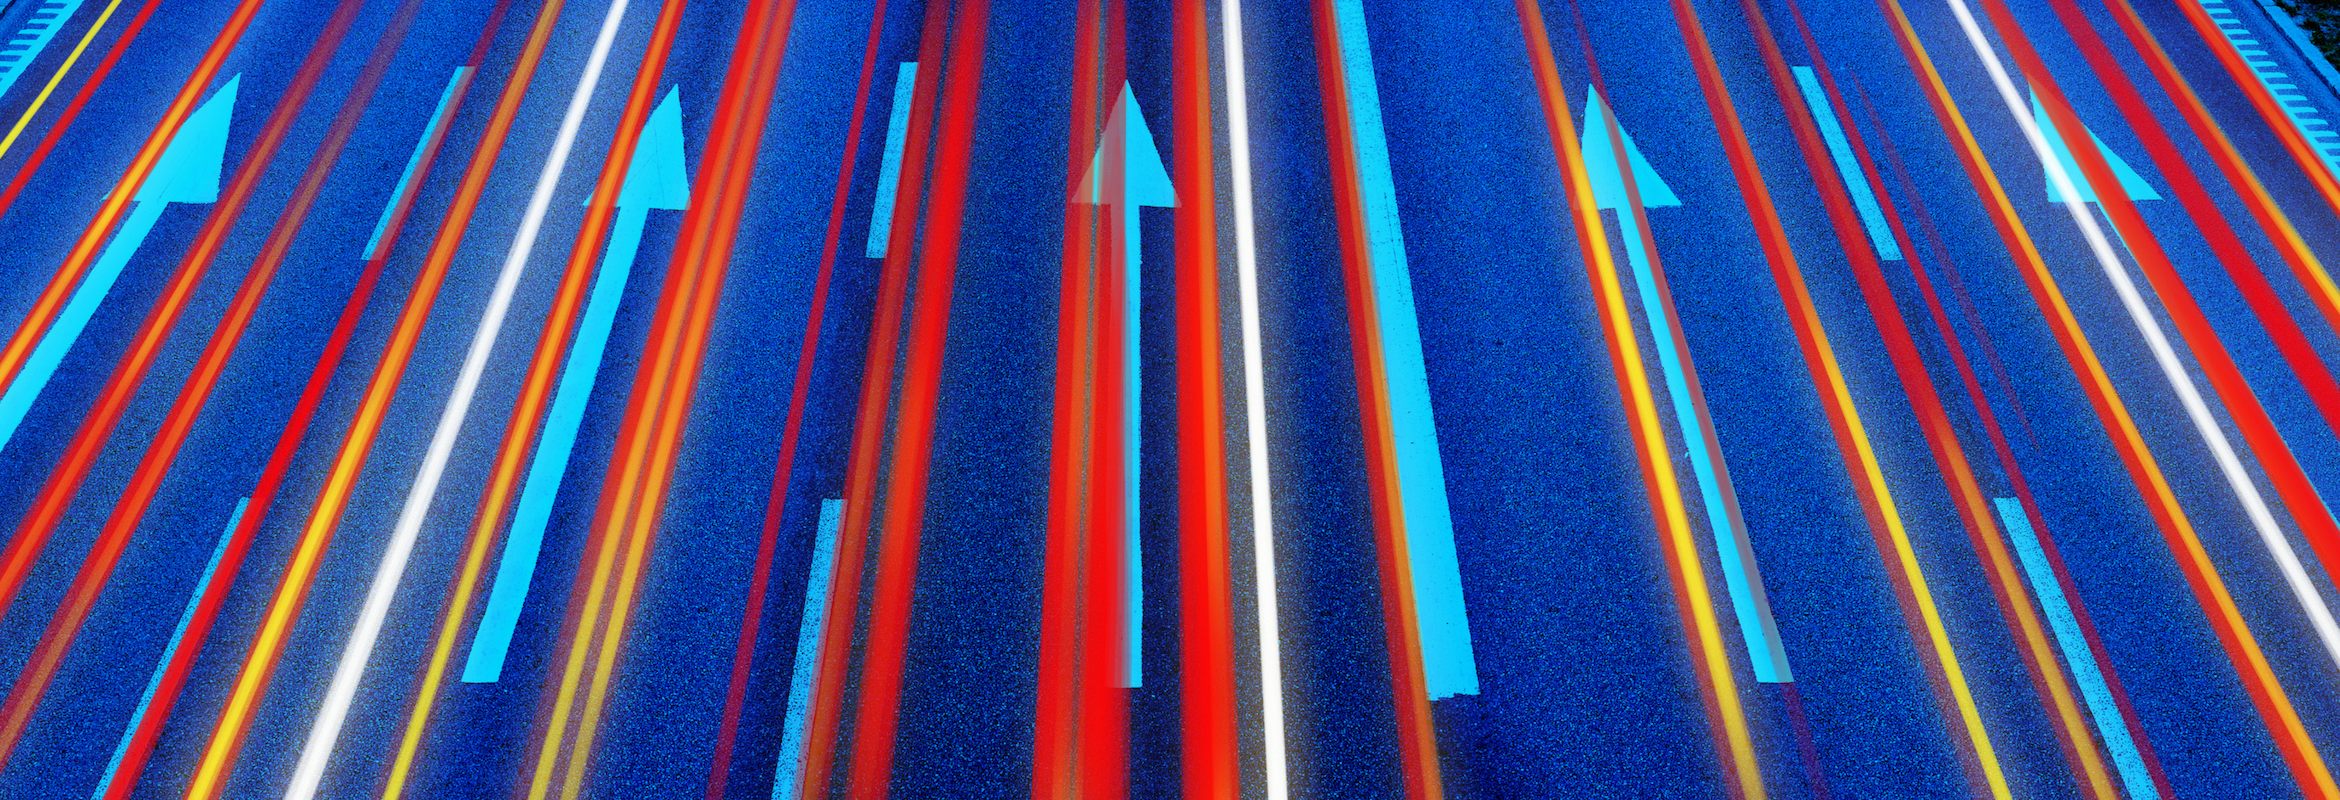 Colorful arrows on a blue background.